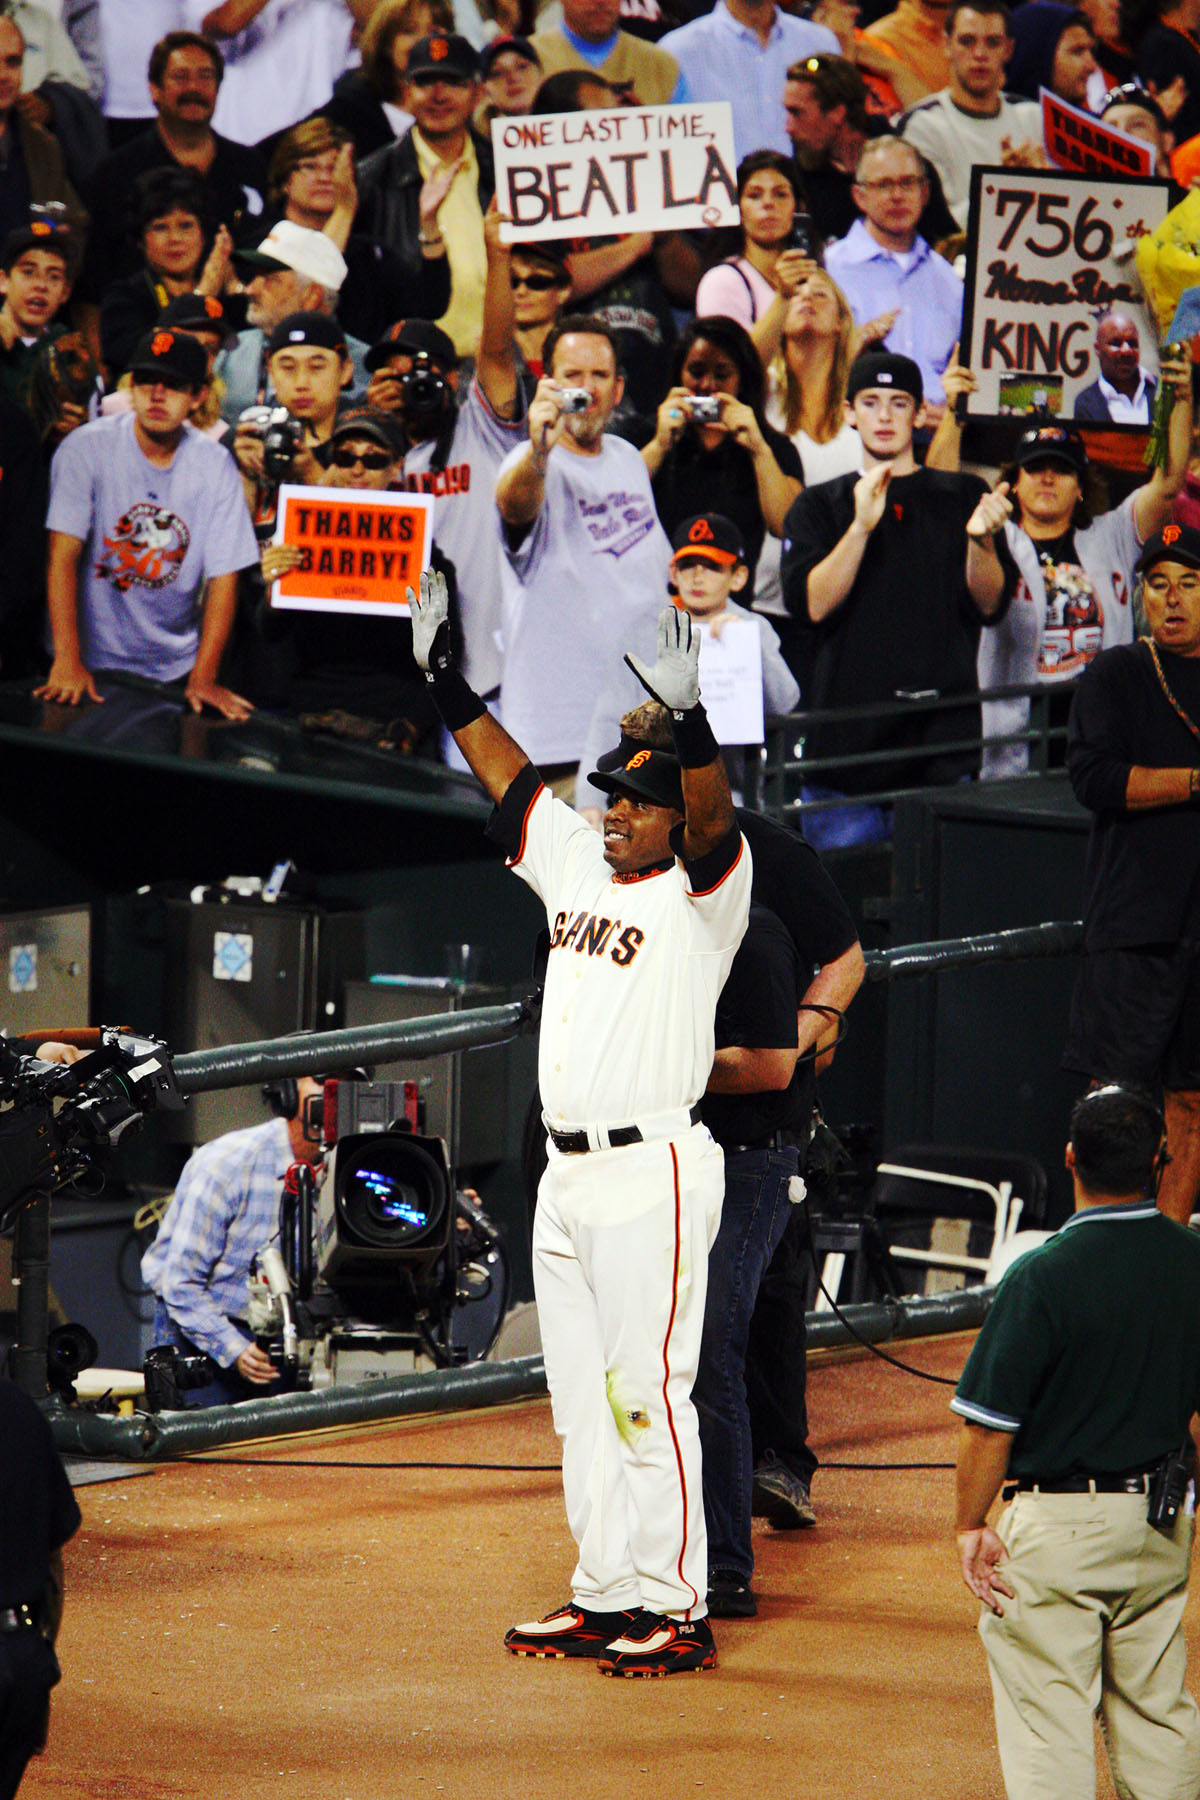 Barry Bonds Home Run King